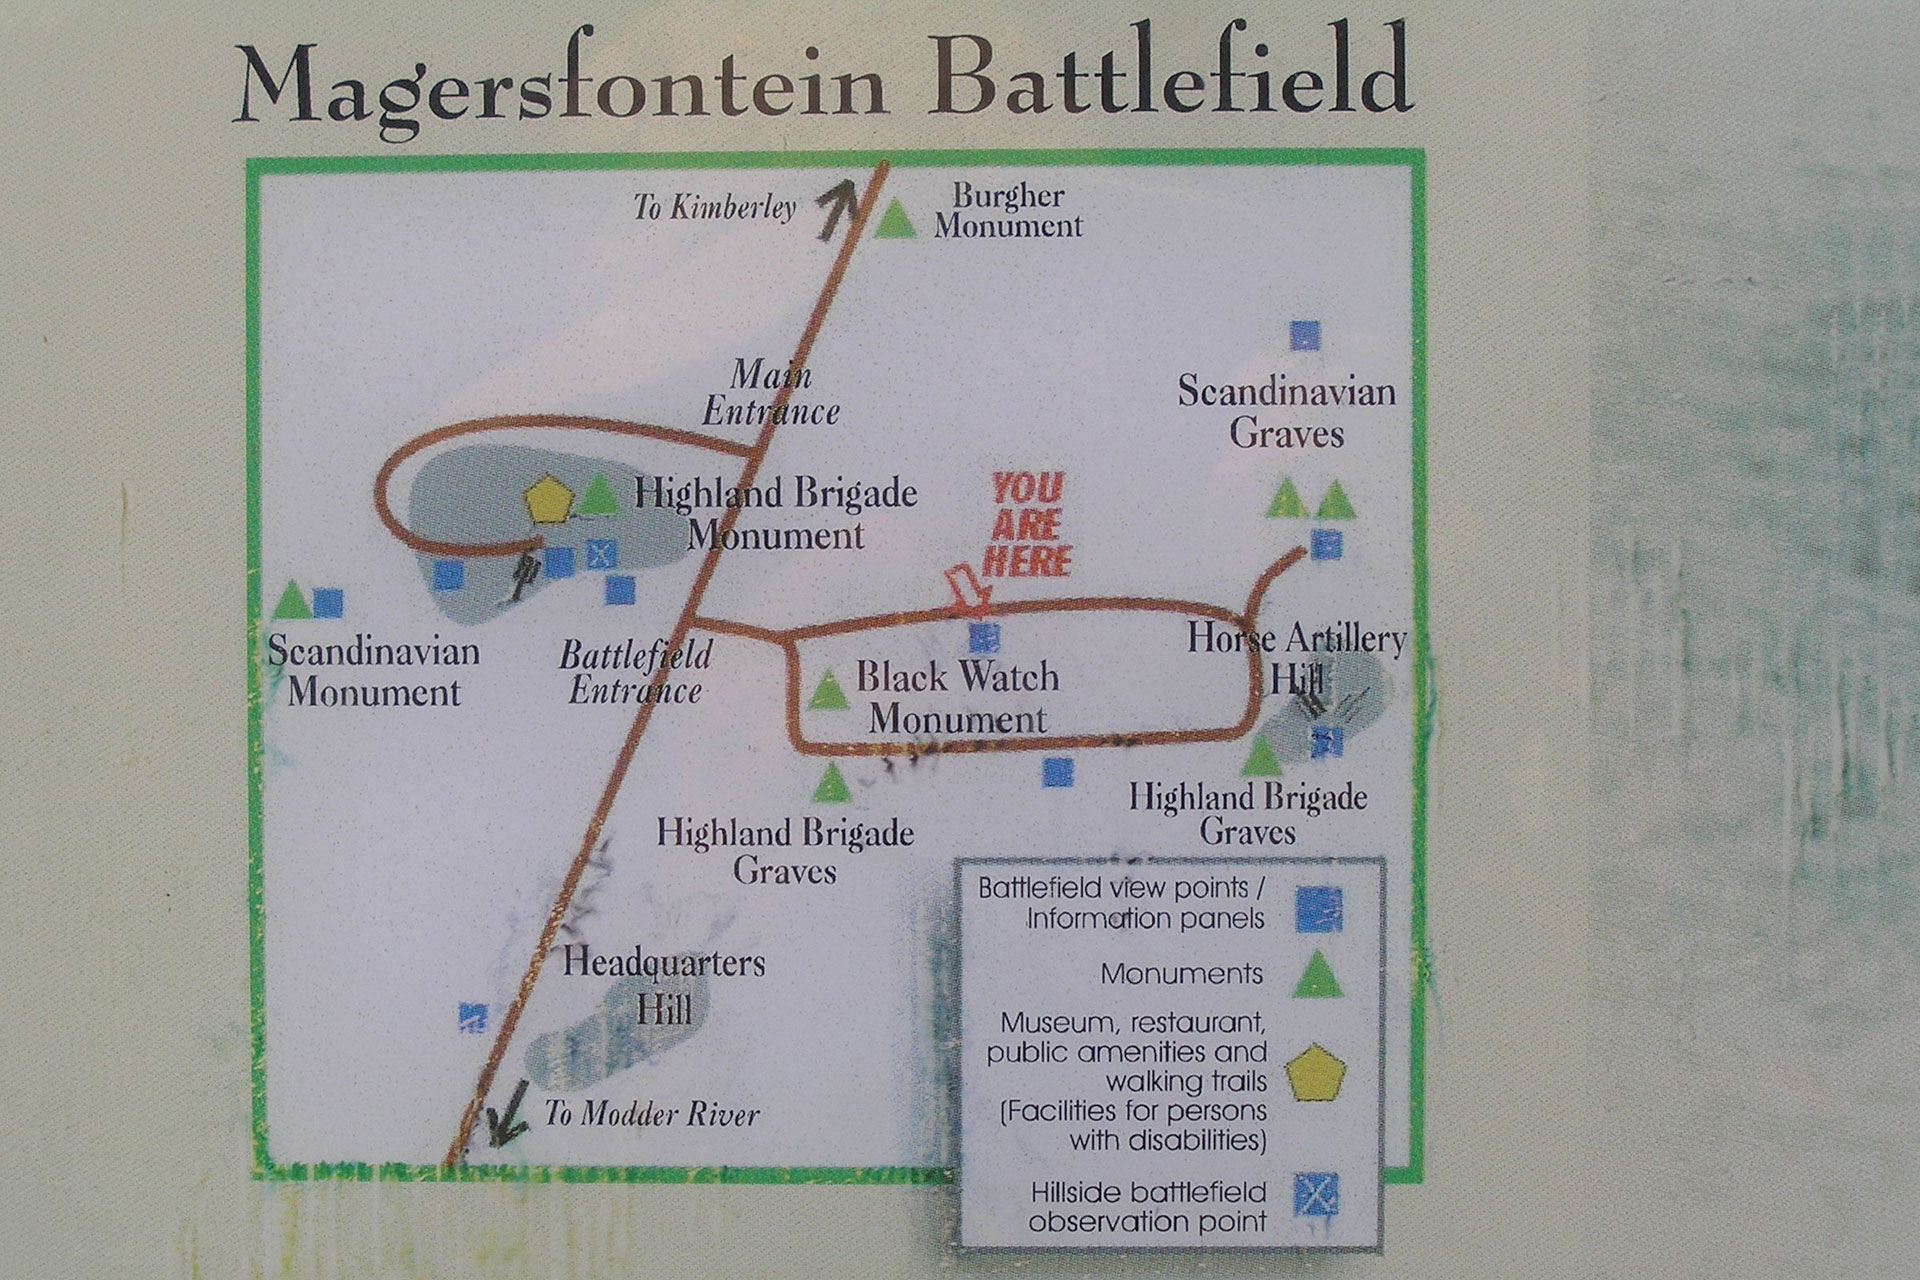 A plaque at Magersfontein showing major features